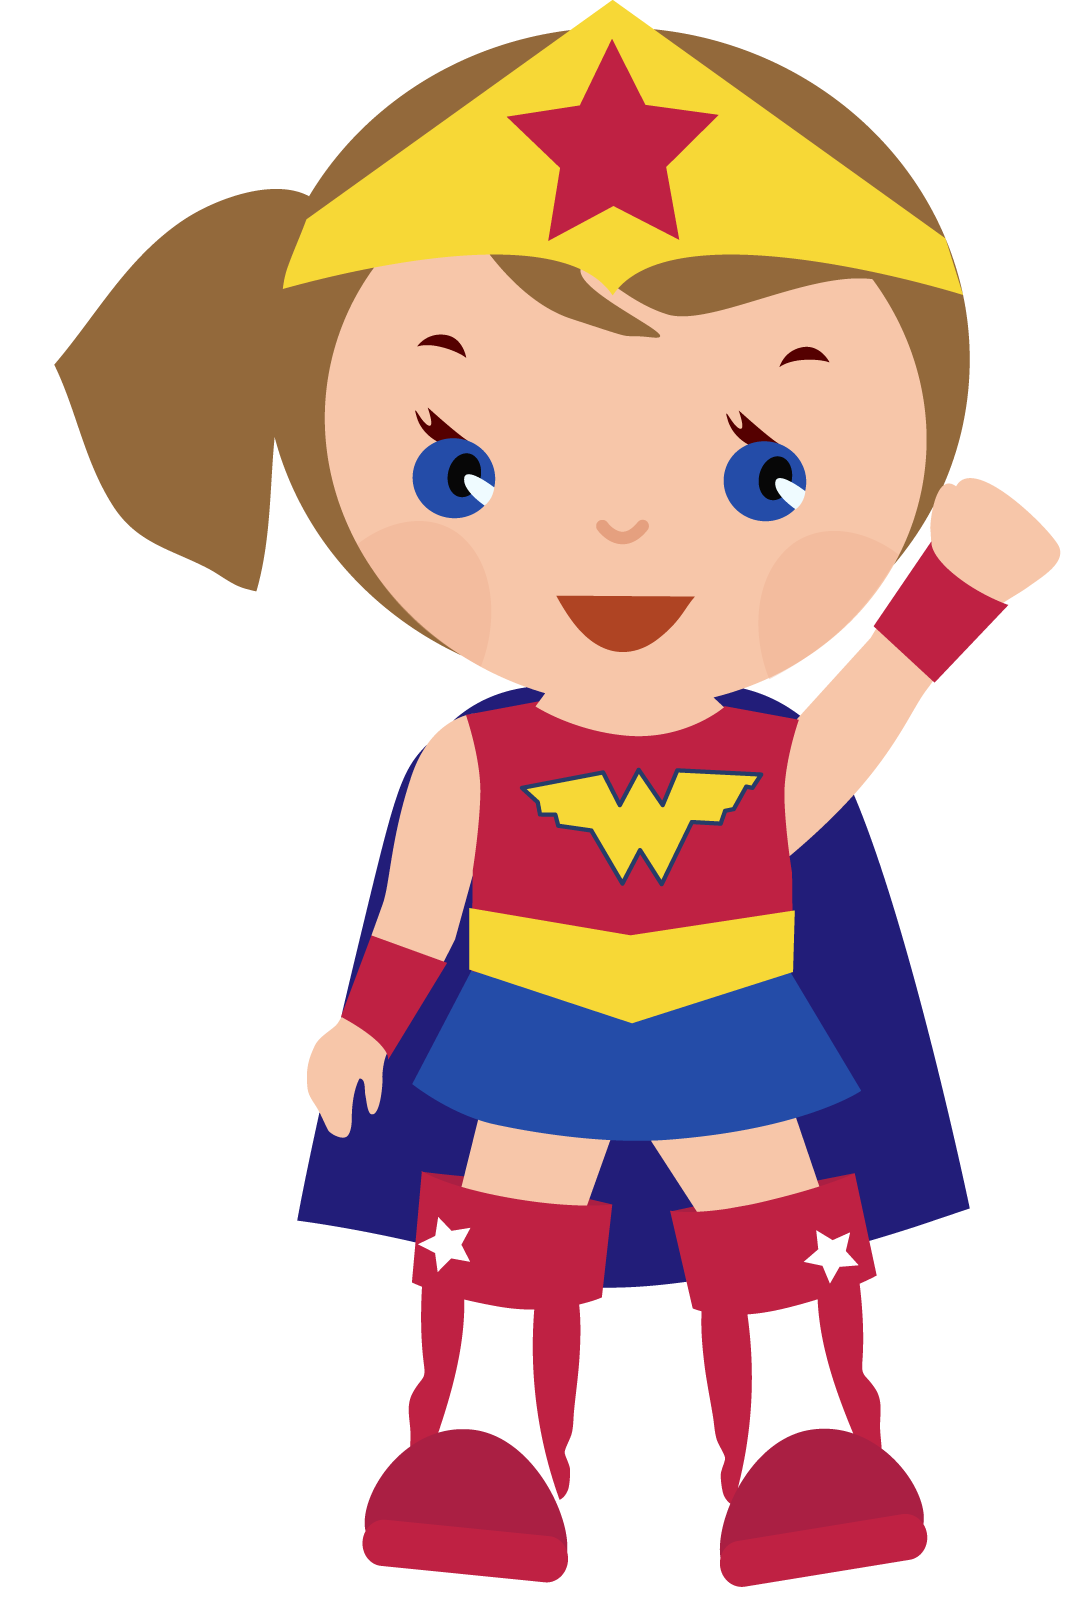 Marvel super hero clipart free